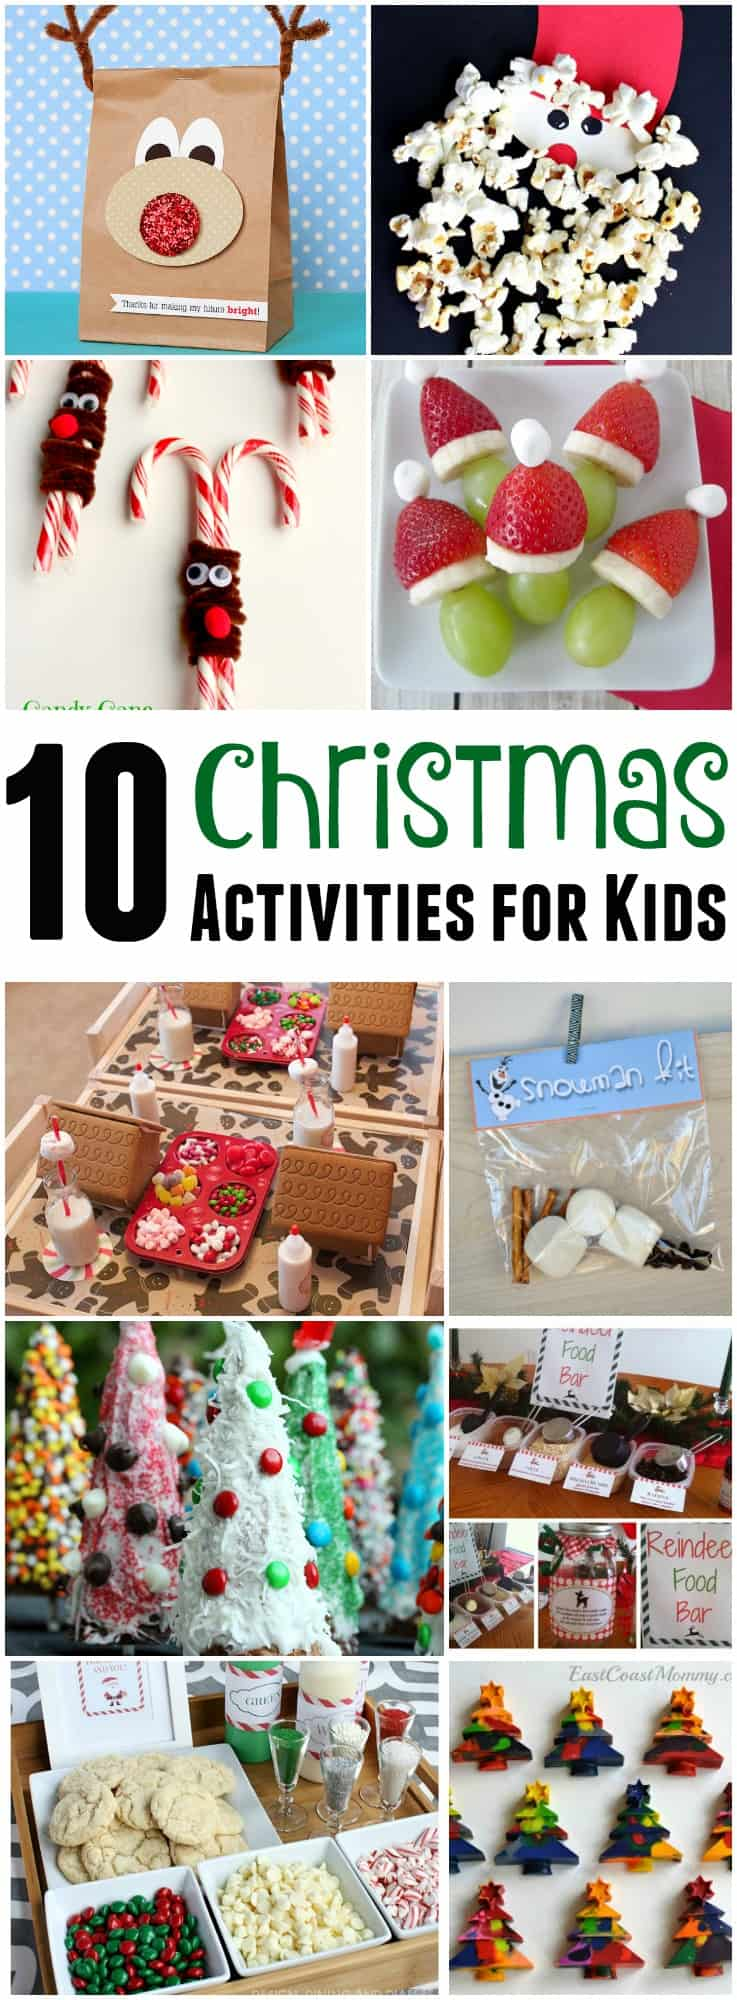 Do your kids get bored during the holiday break? Here's 10 fun Christmas activities for kids that will keep them busy while they use their creativity!